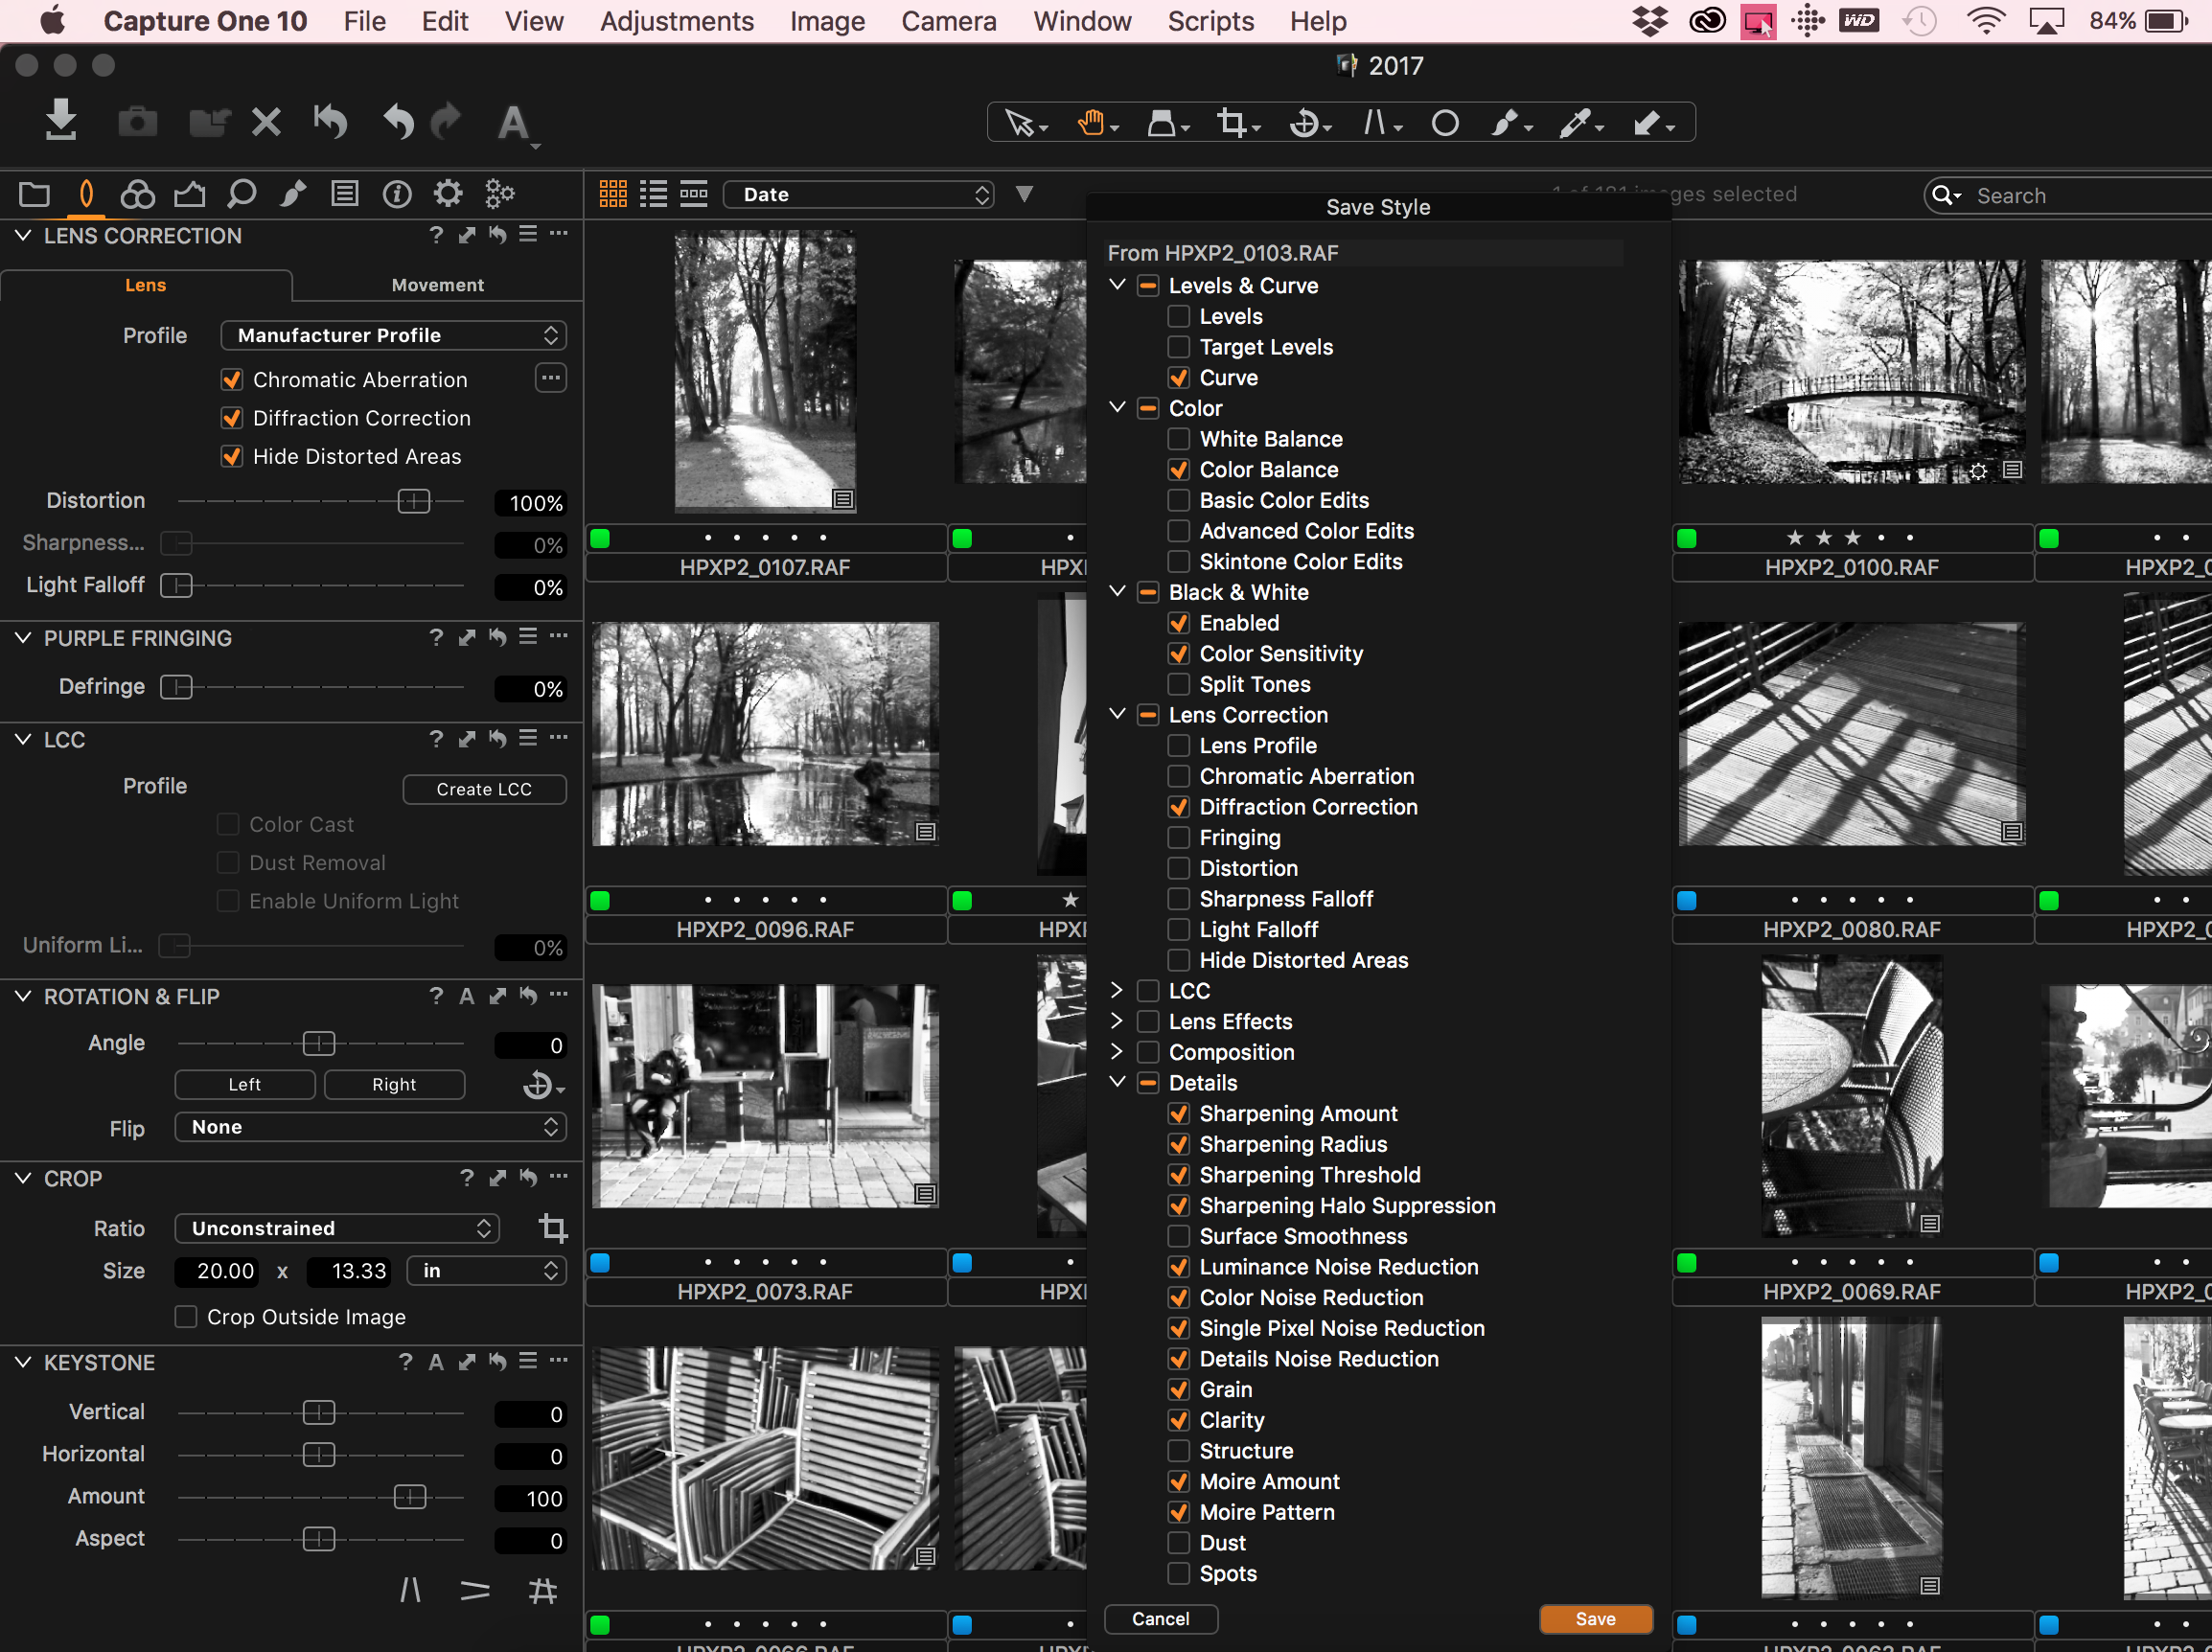 Deselect presets which are image dependent!